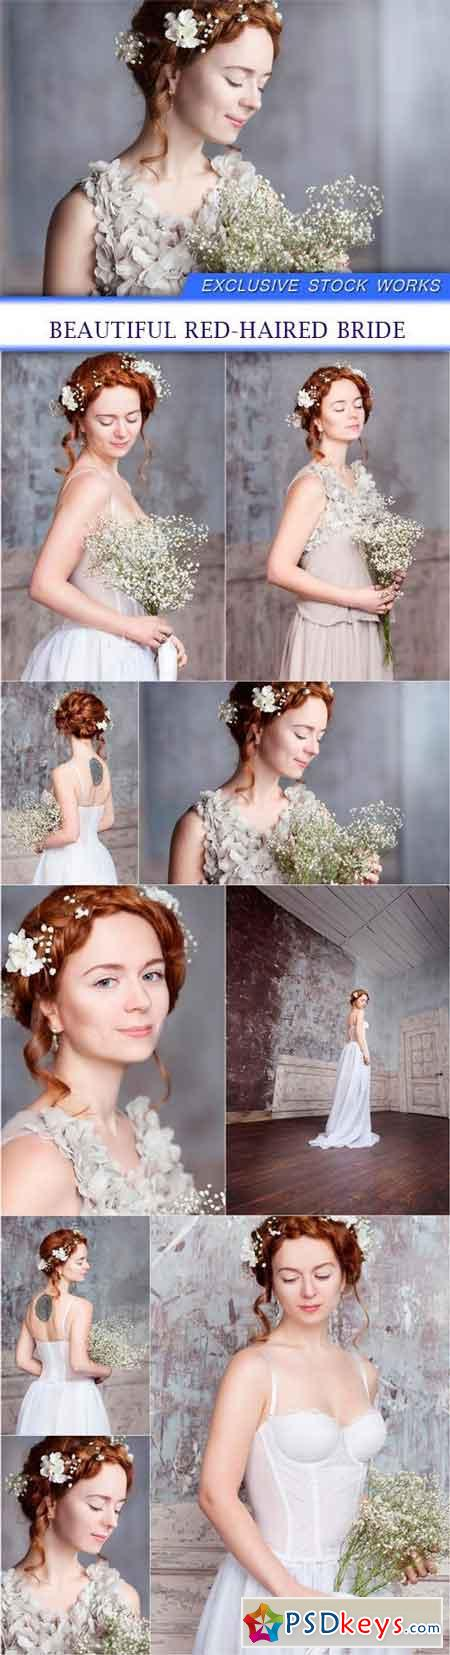 Beautiful red-haired bride 9X JPEG